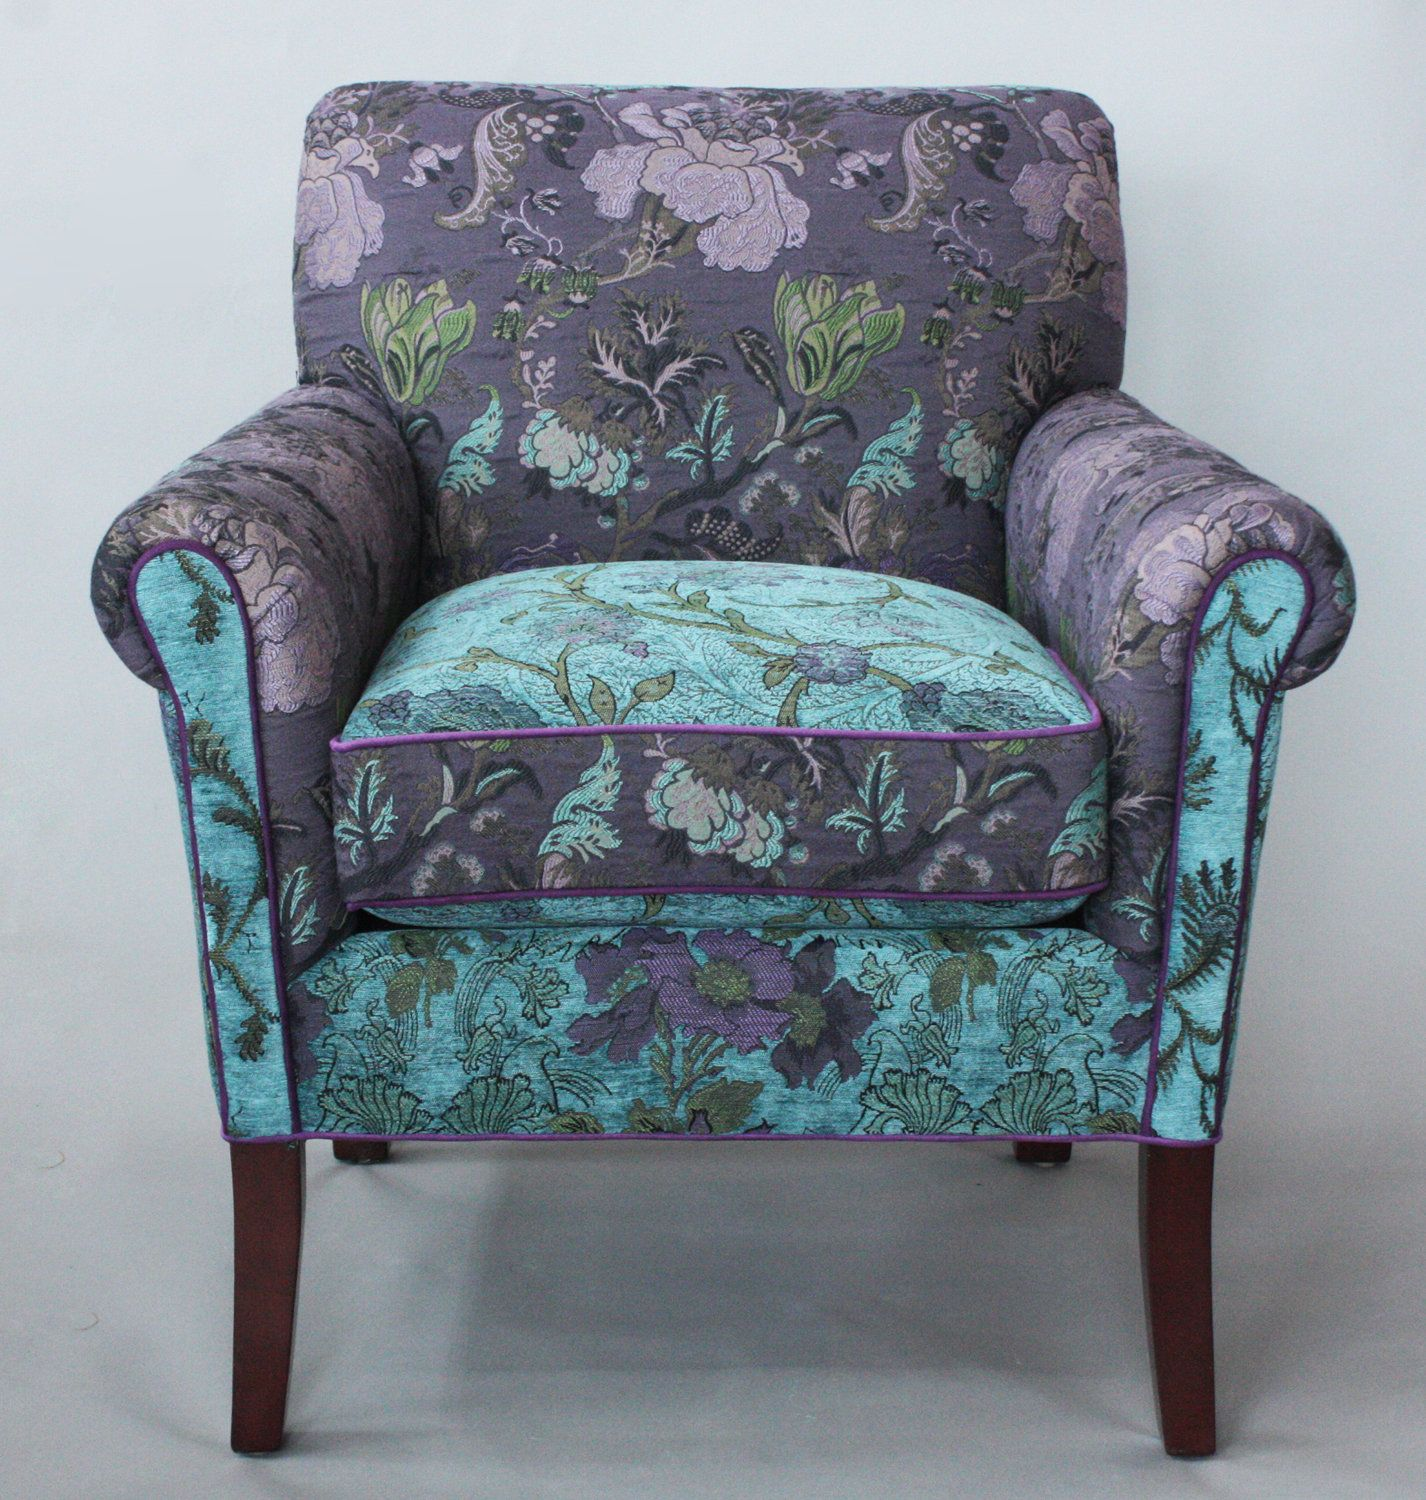 Lavender Chair Salon Chair In Lavender Vine By Mary Lynn Oshea